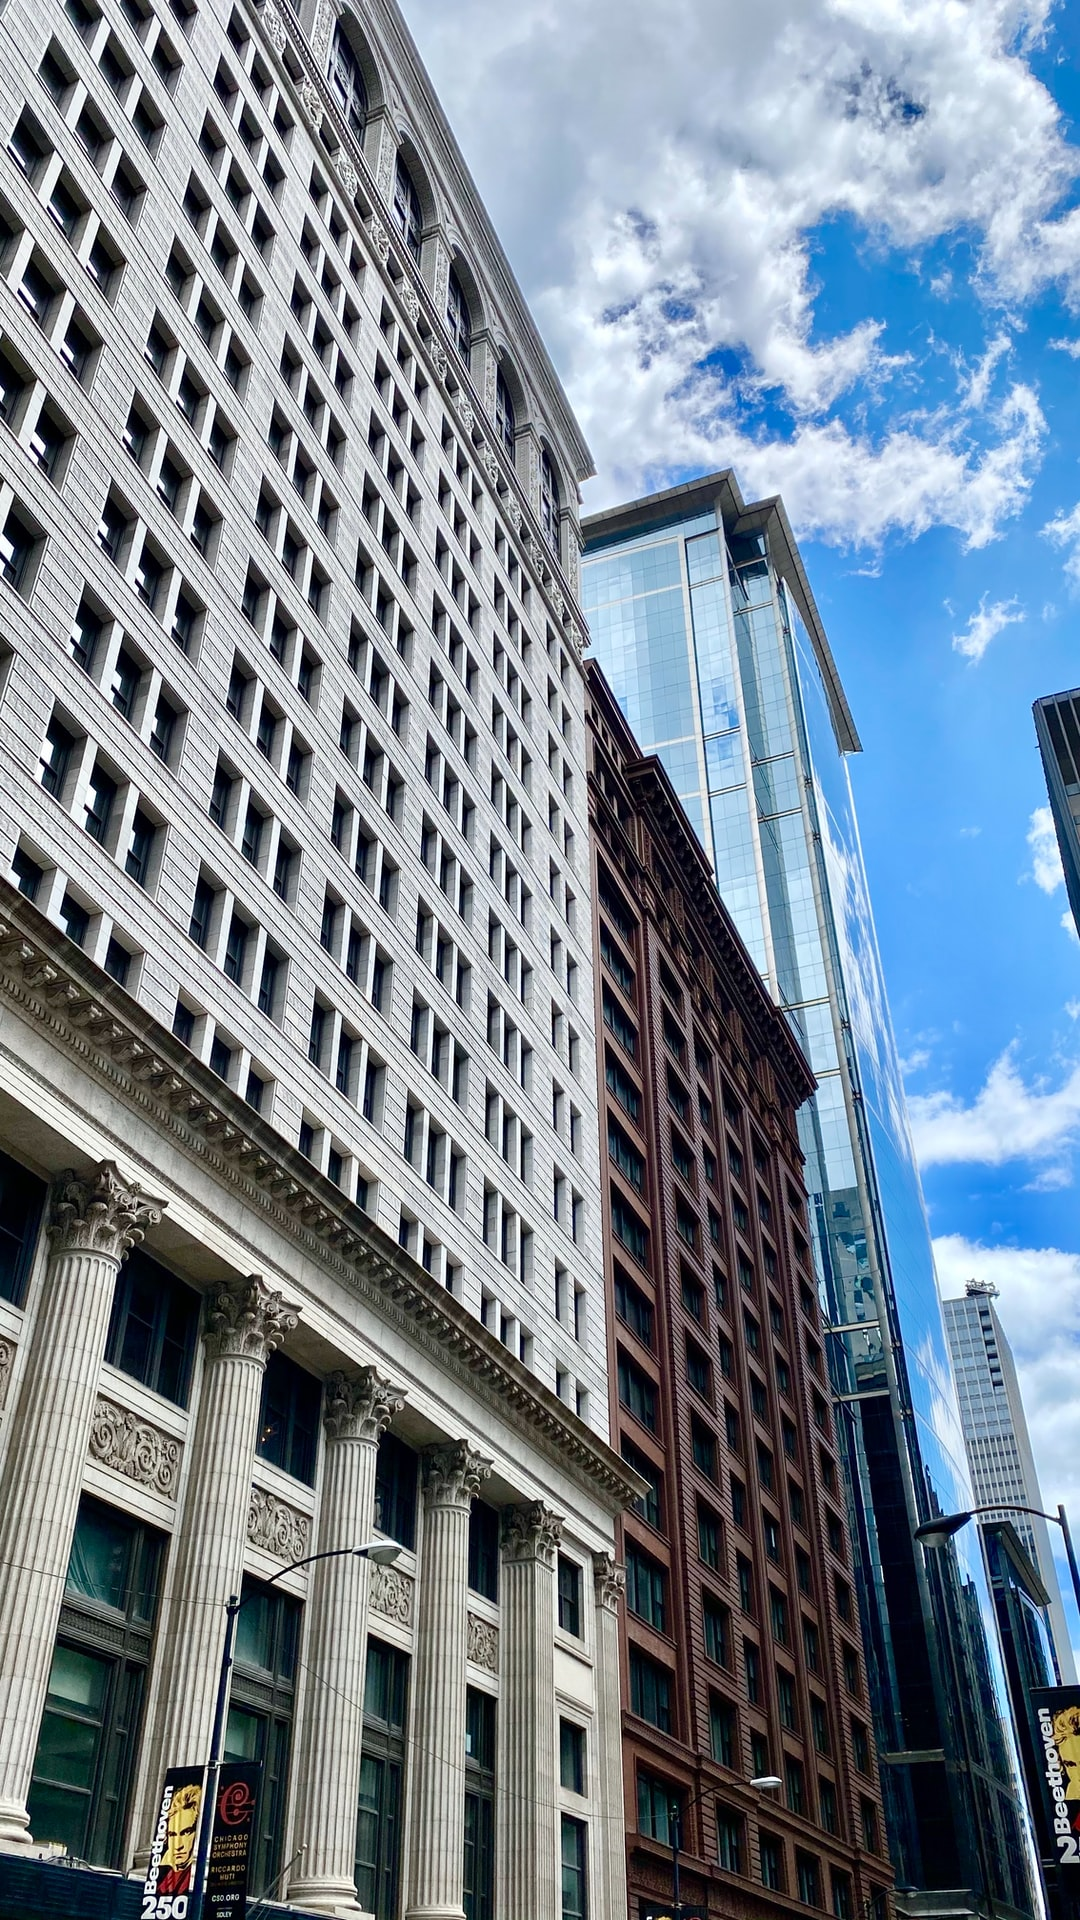 Chicago's loop has some incredible architecture.